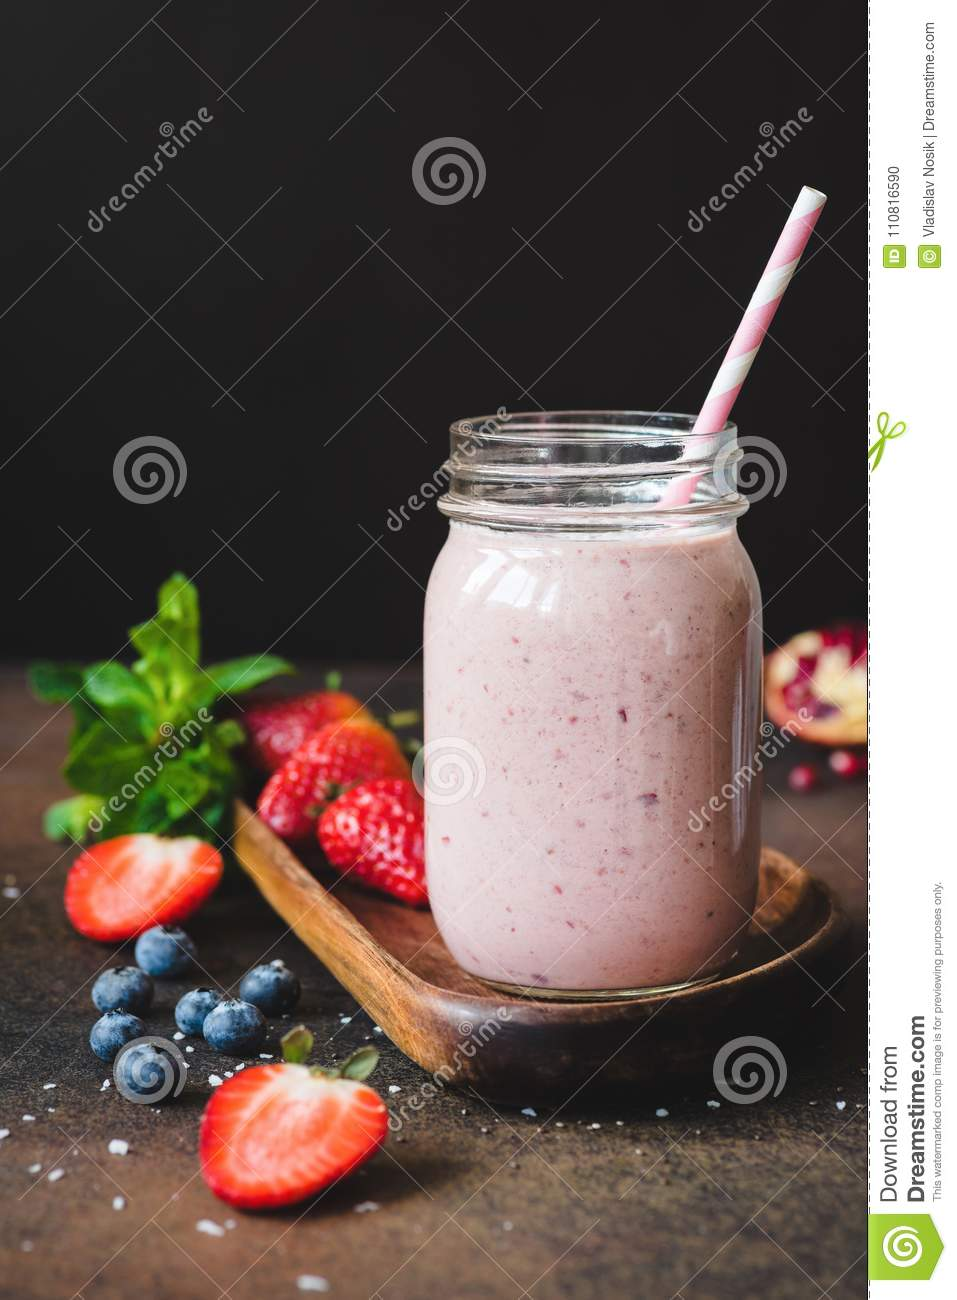 Strawberry smoothie in a jar with drinking straw